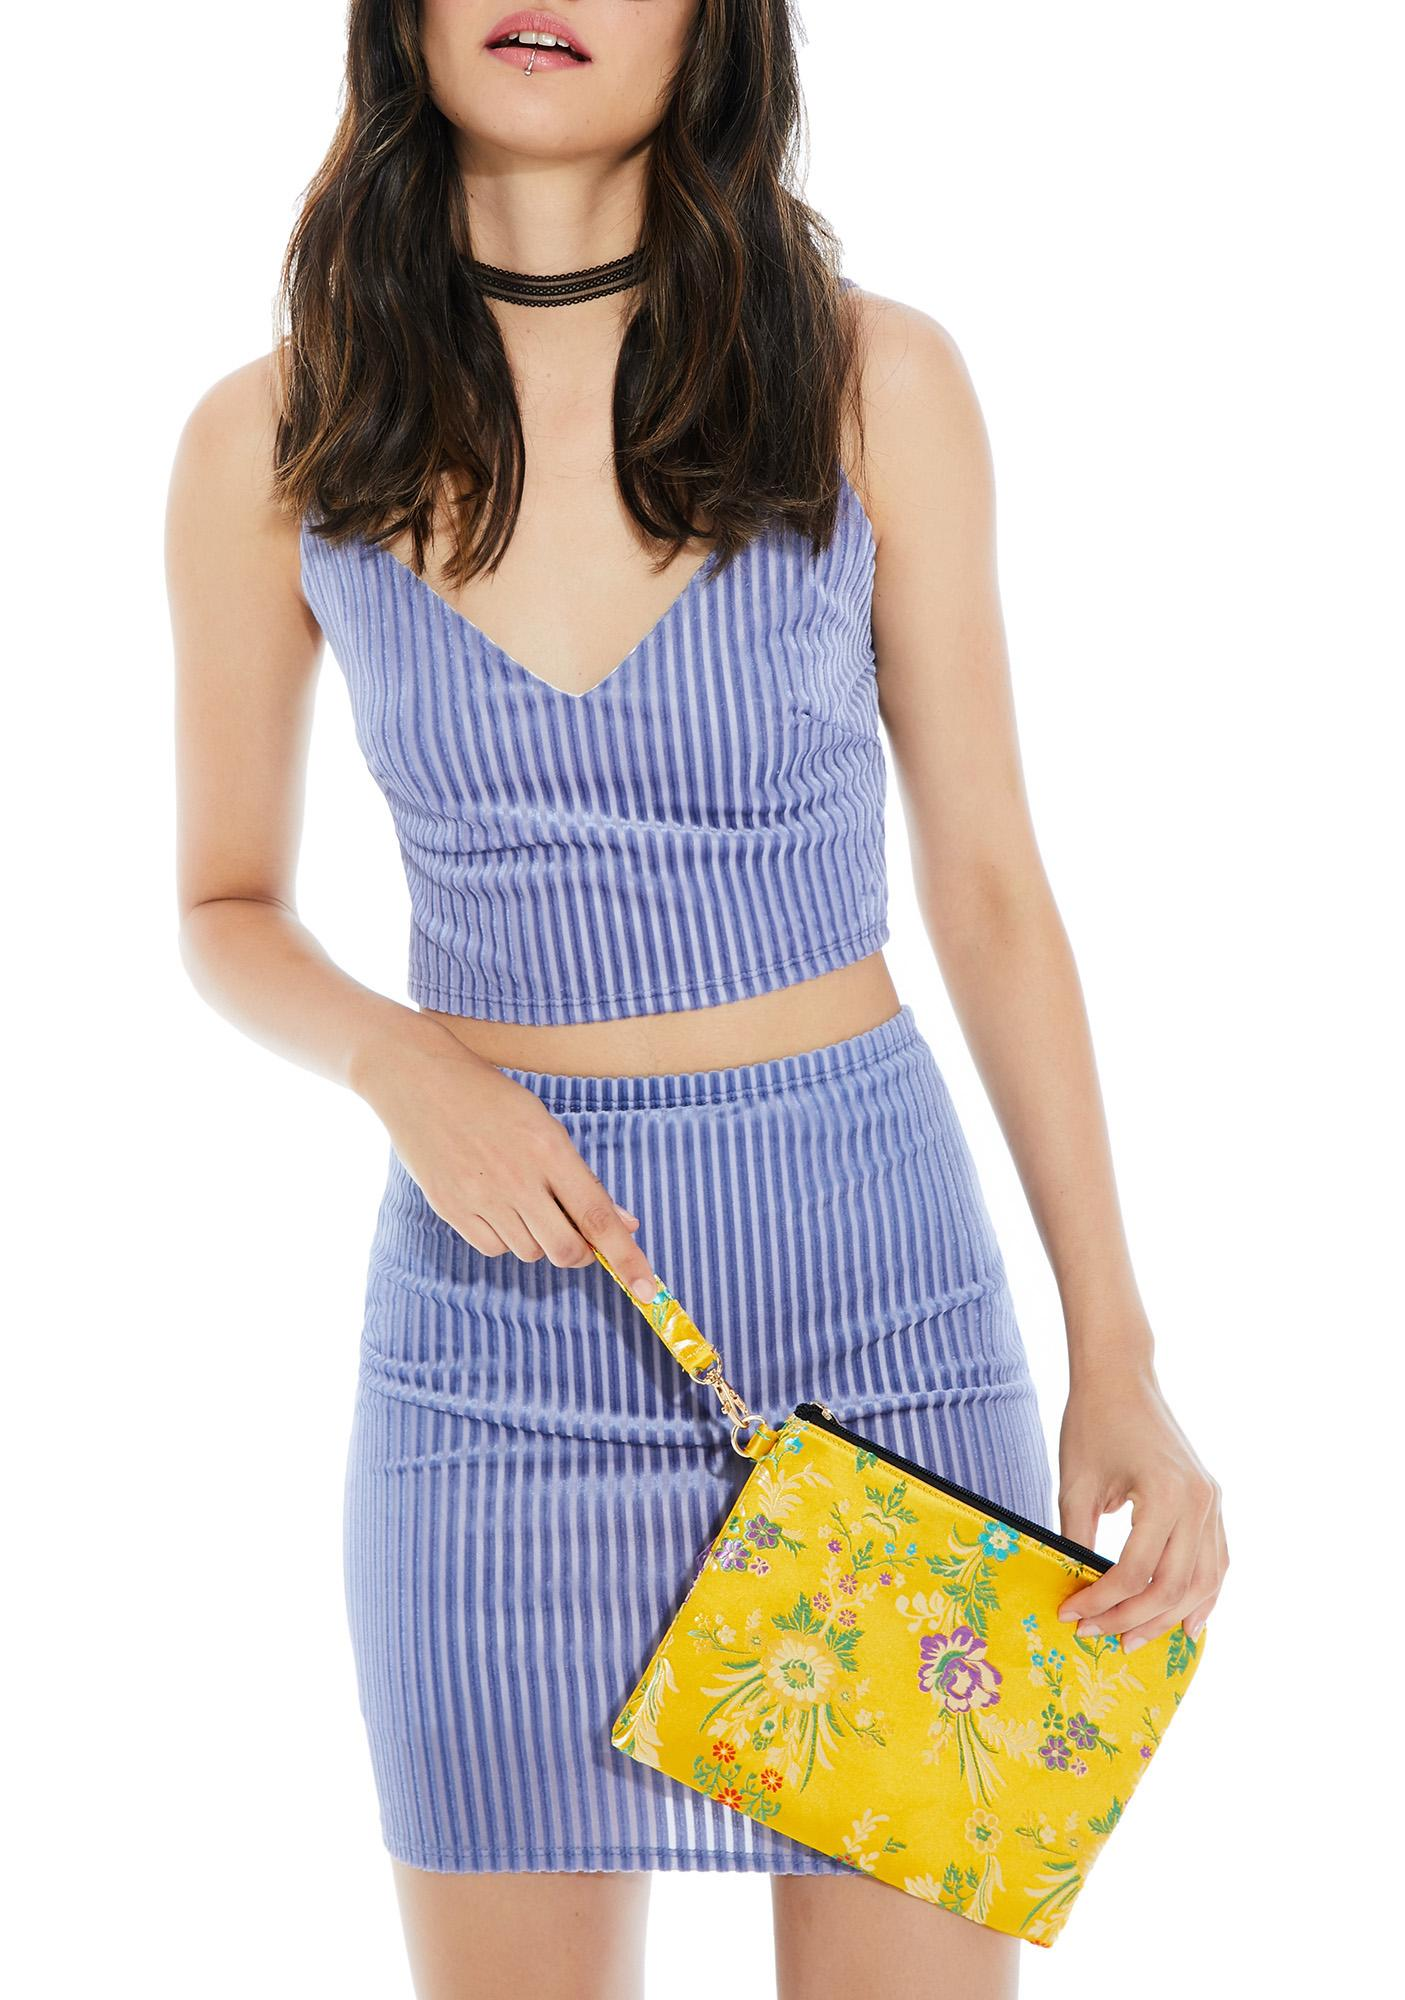 Sunny In Bloom Brocade Wristlet